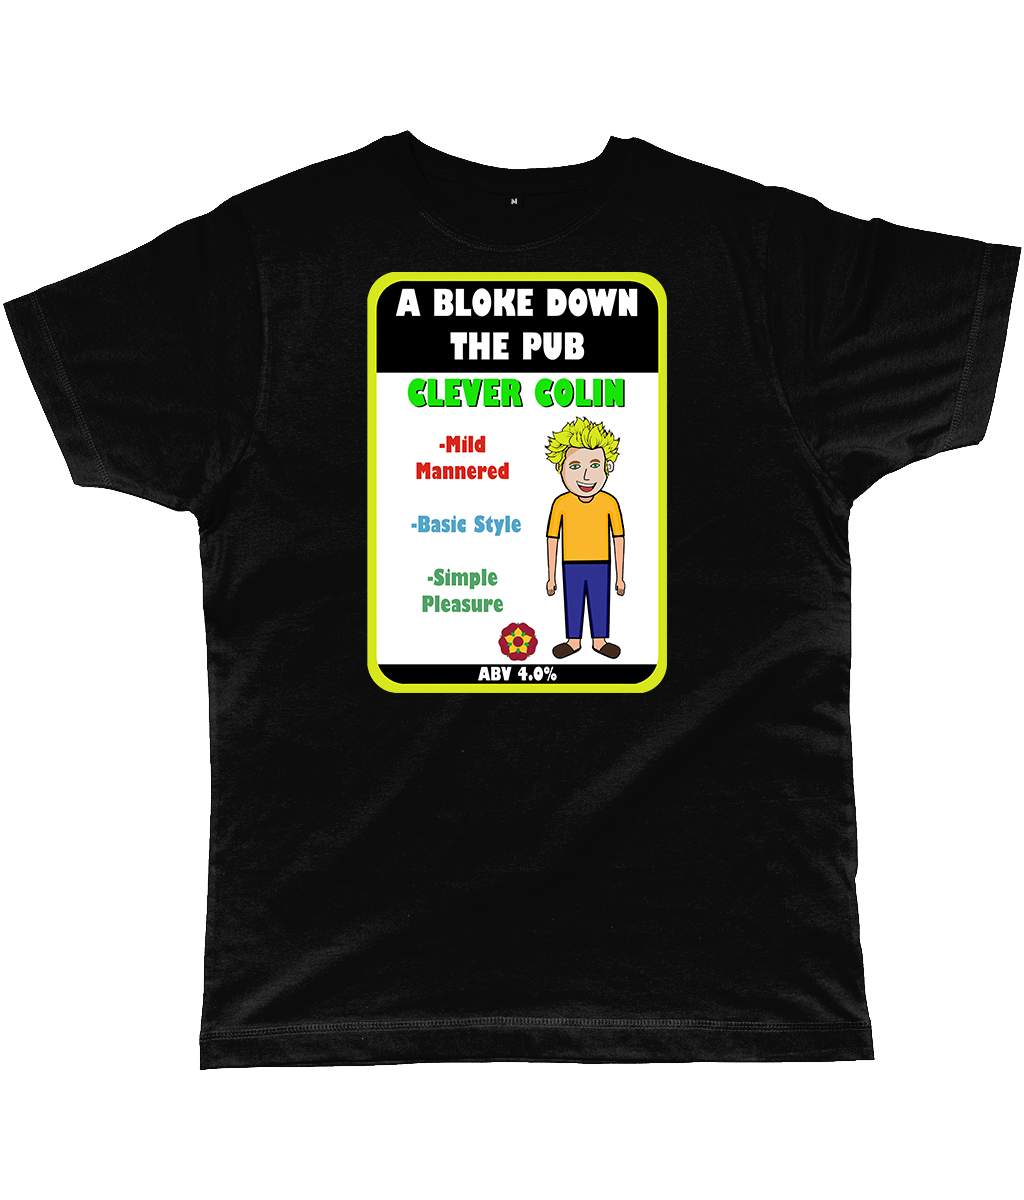 A Bloke Down the Pub Clever Colin Pump Clip Classic Cut Men's T-Shirt